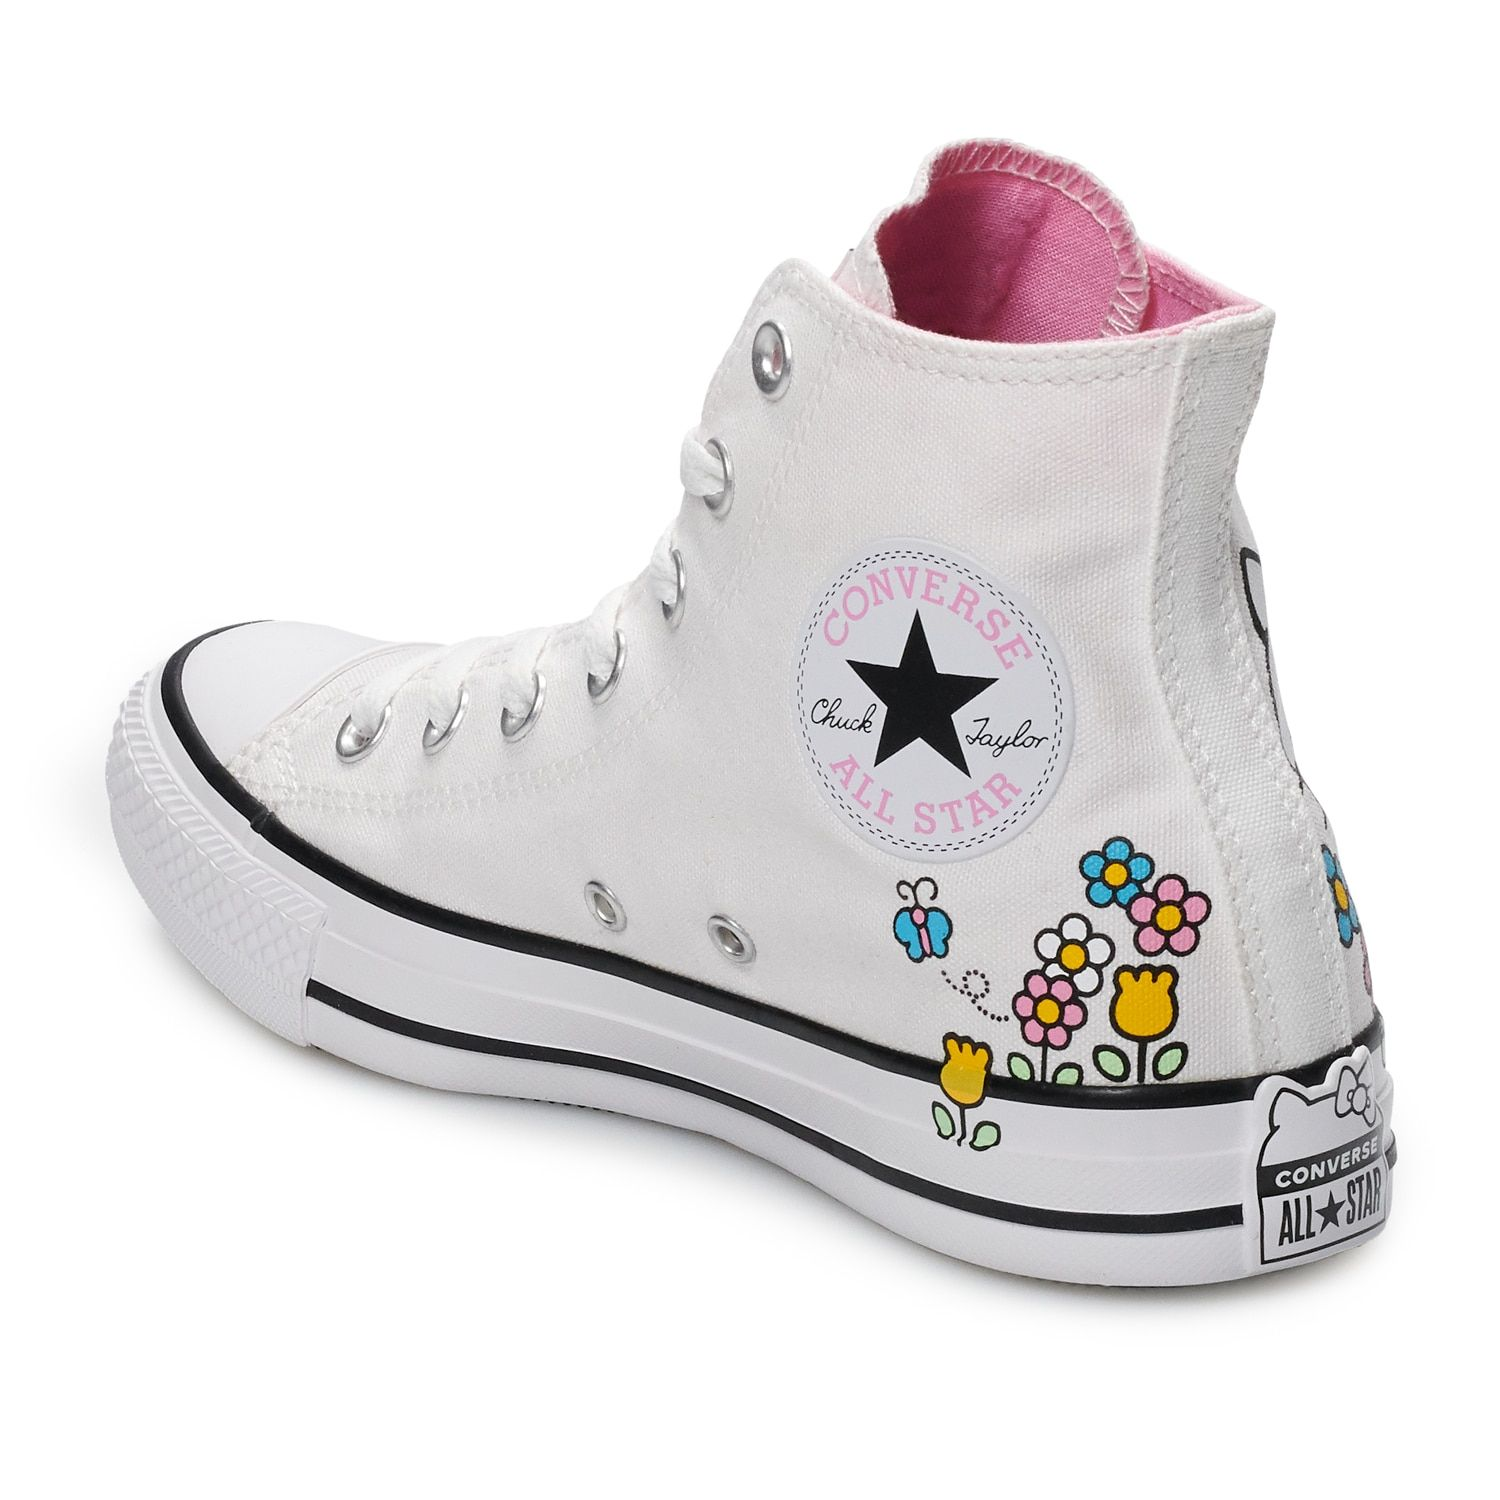 Women's Converse Hello Kitty? Chuck Taylor All Star High Top